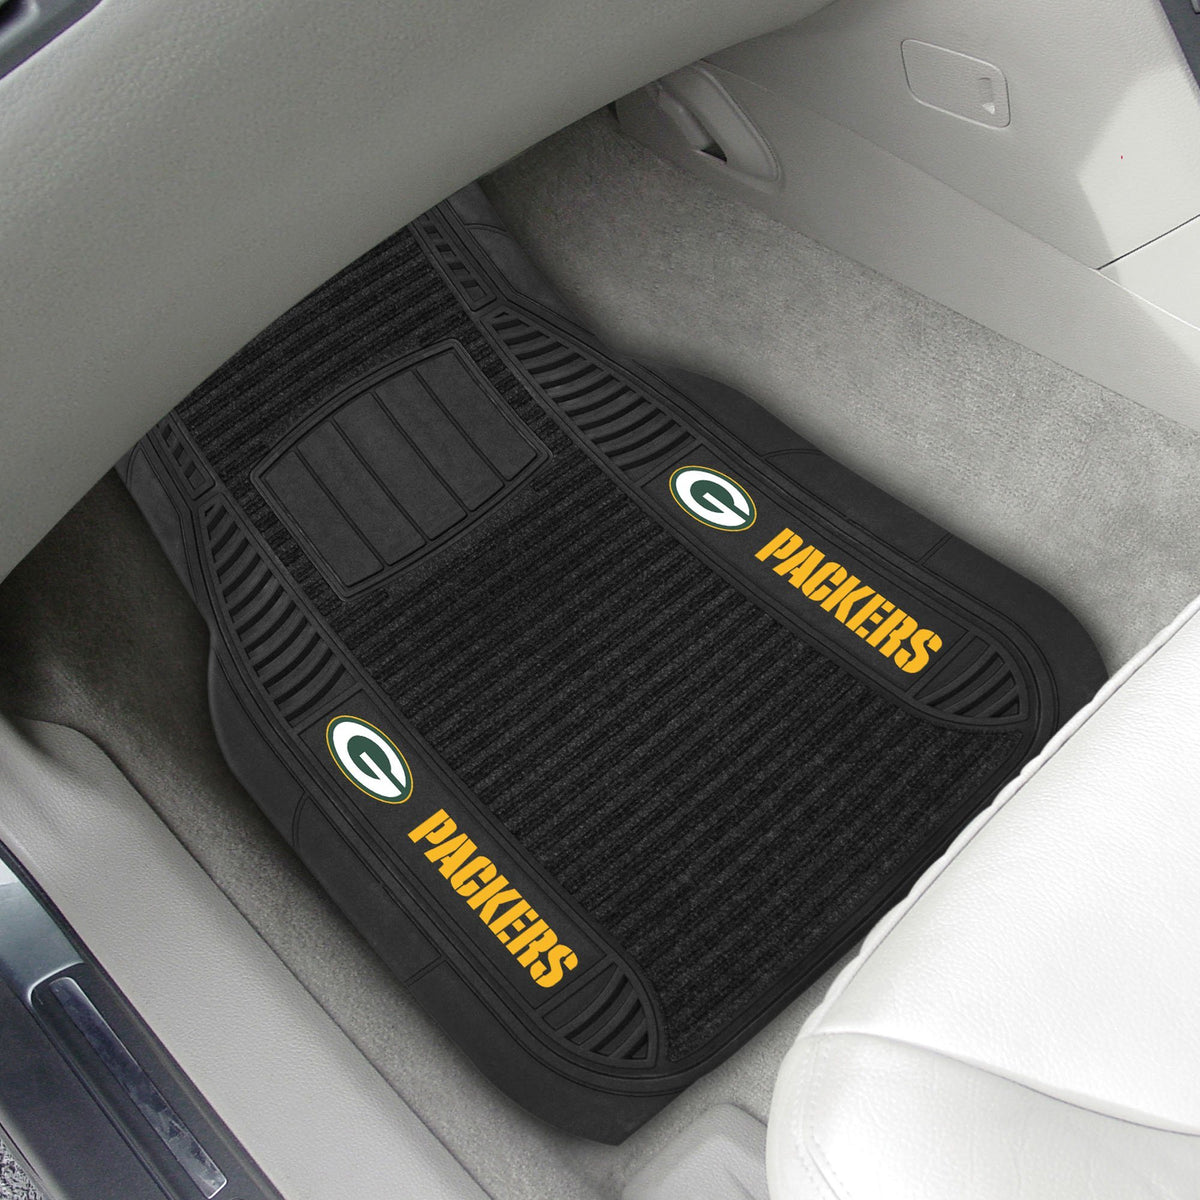 "NFL - 2-pc Deluxe Car Mat Set, 21"" x 27"" NFL Mats, Front Car Mats, 2-pc Deluxe Car Mat Set, NFL, Auto Fan Mats Green Bay Packers"